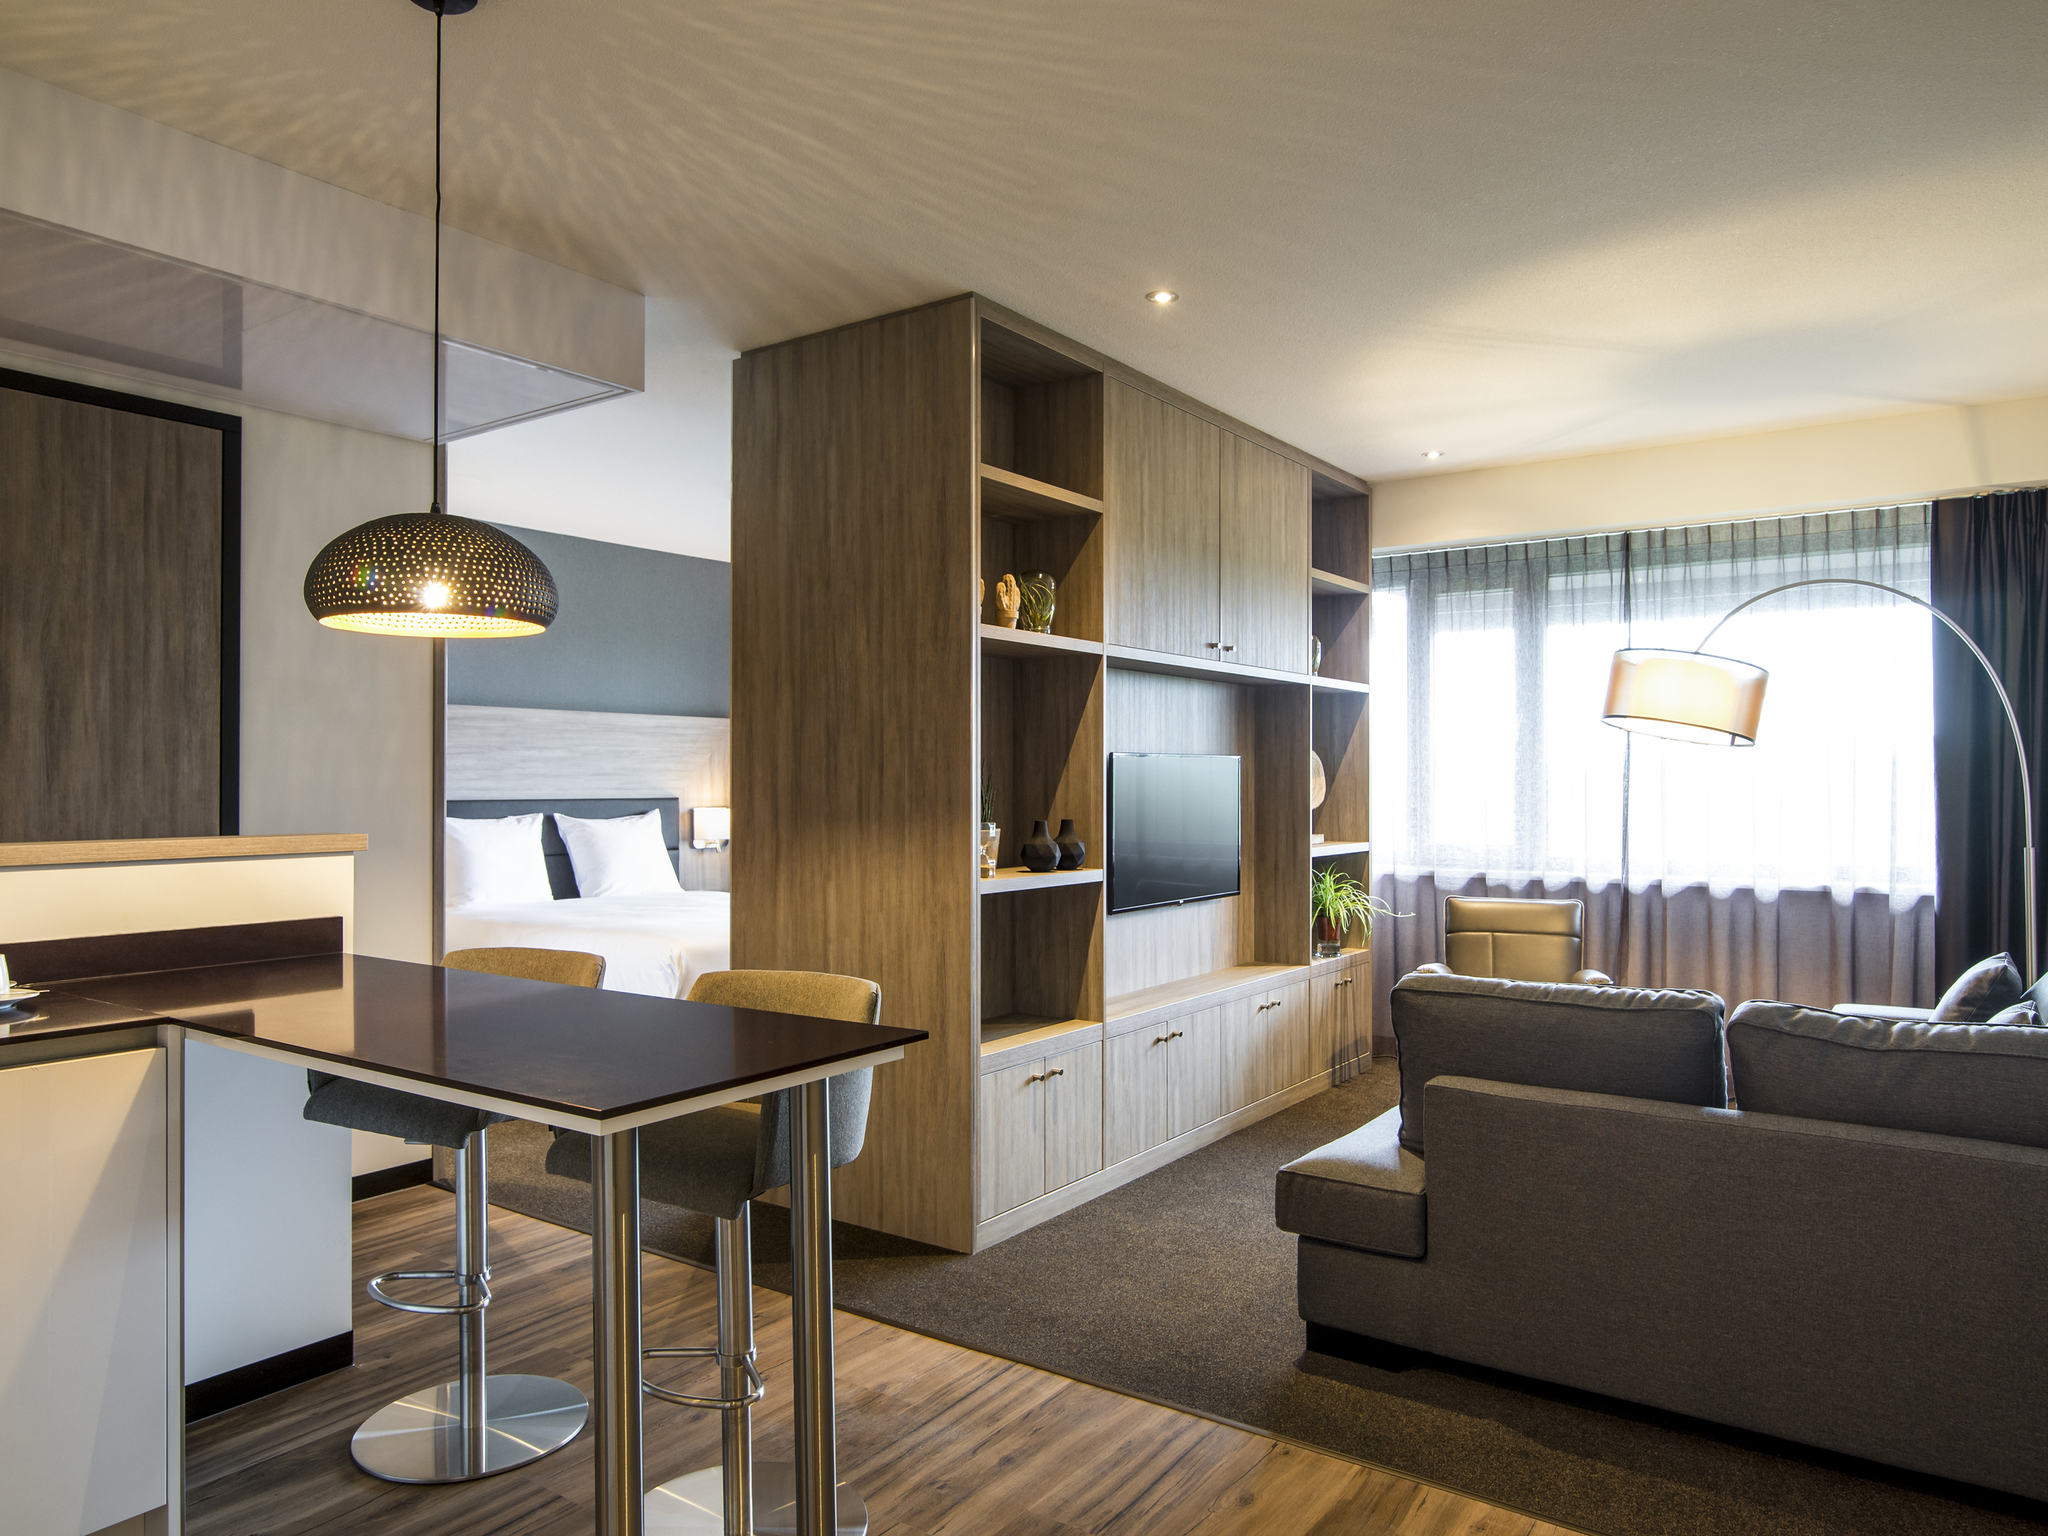 Hotel – Aparthotel Adagio Amsterdam City South